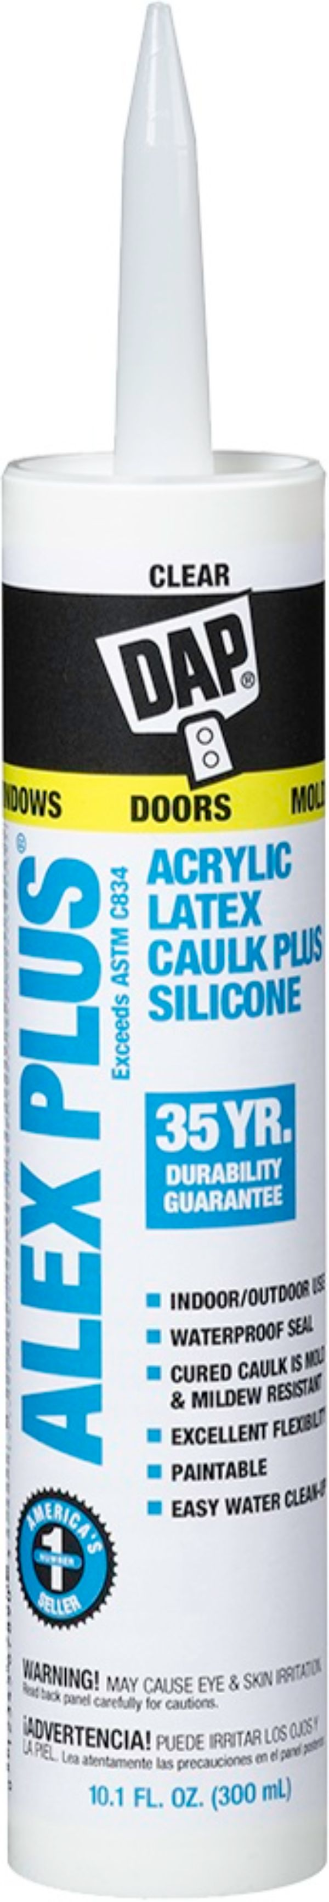 DAP Alex Plus Caulk w/ Silicone - Clear